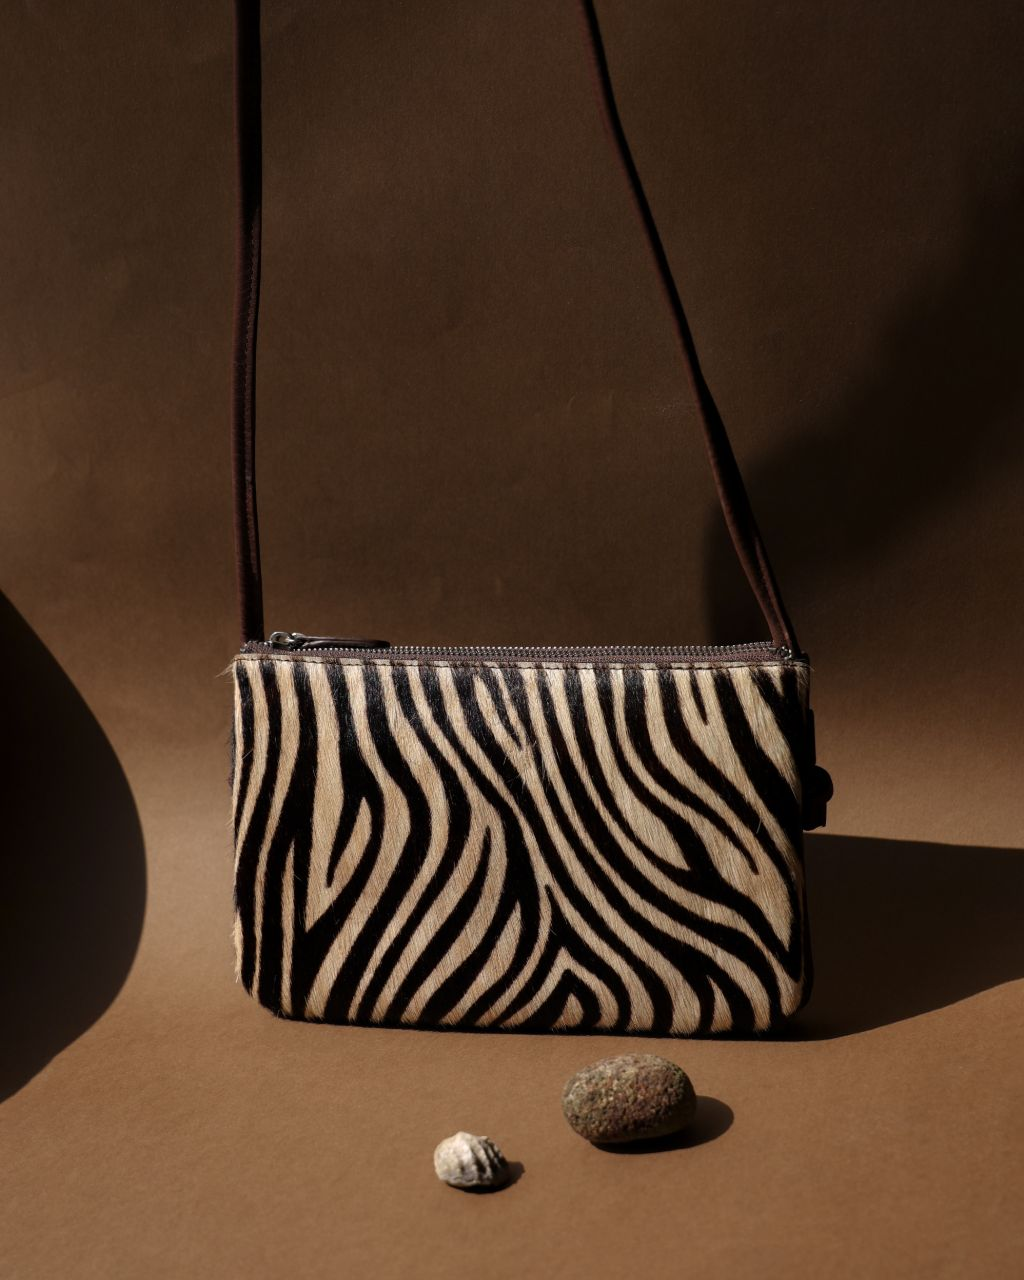 Zebra pattern Pony Hair leather crossbody bag in brown TL-14632H_front